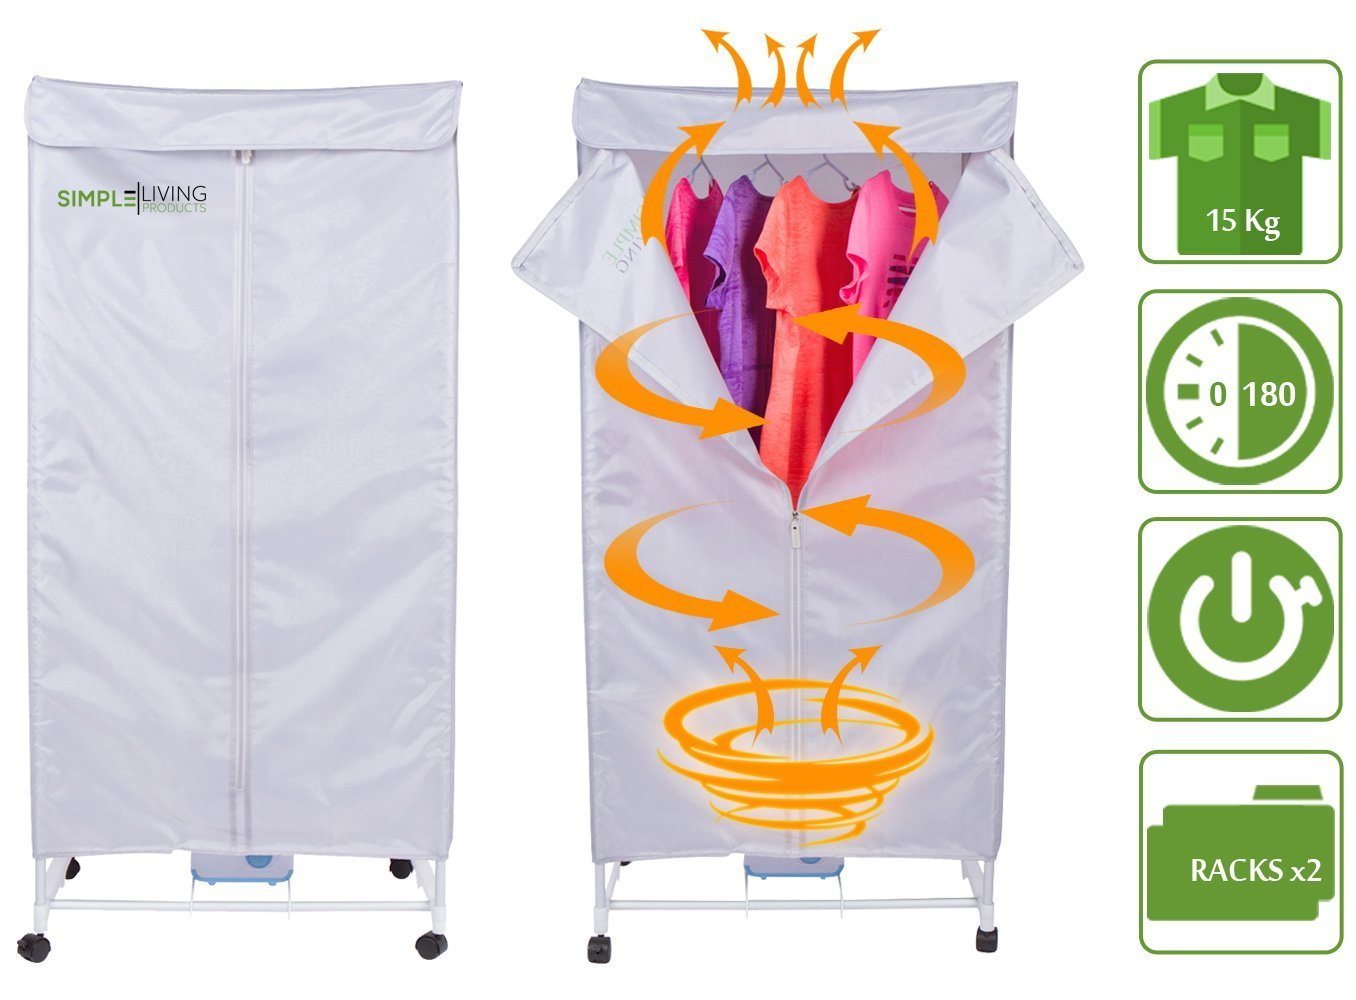 15KG Compact Electric Portable Clothing Dryer - Portable Clothes Dryer Rack Dries Clothing in 30 Minutes. Saves Time, Money and Space. Dries Everything. Use it Anywhere.